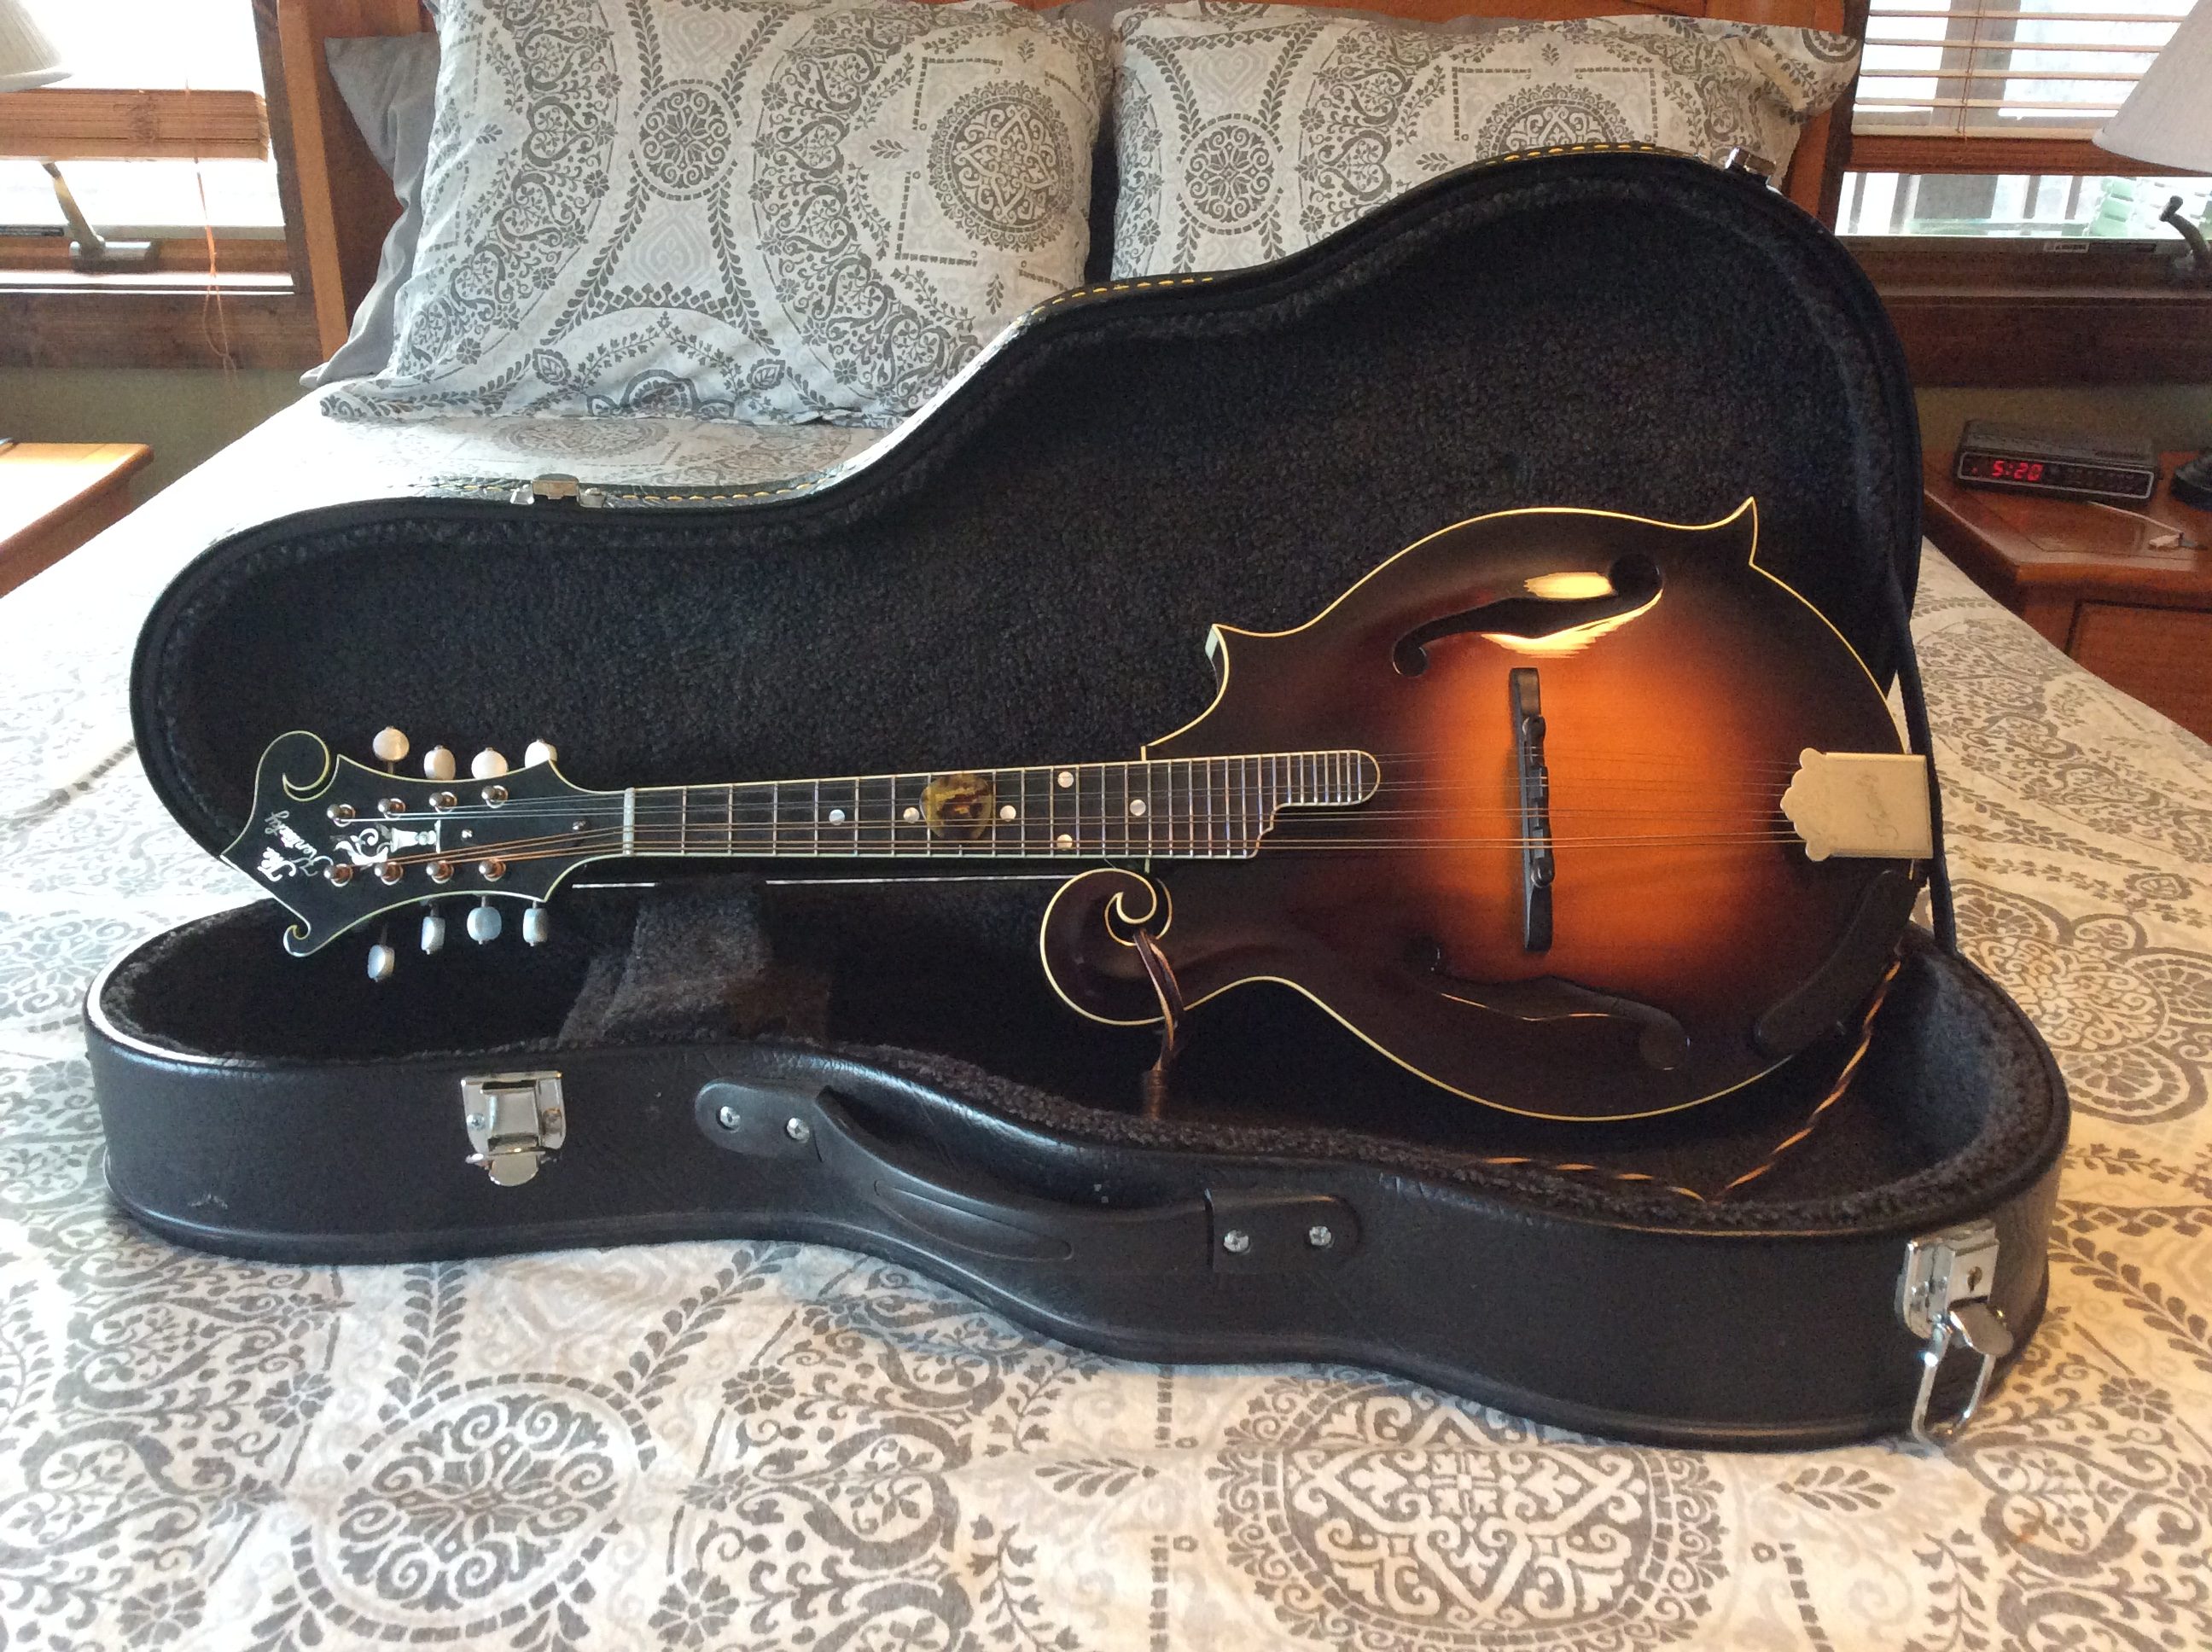 Kentucky Mandolin For Sale - Classified Ads -Buy and sell